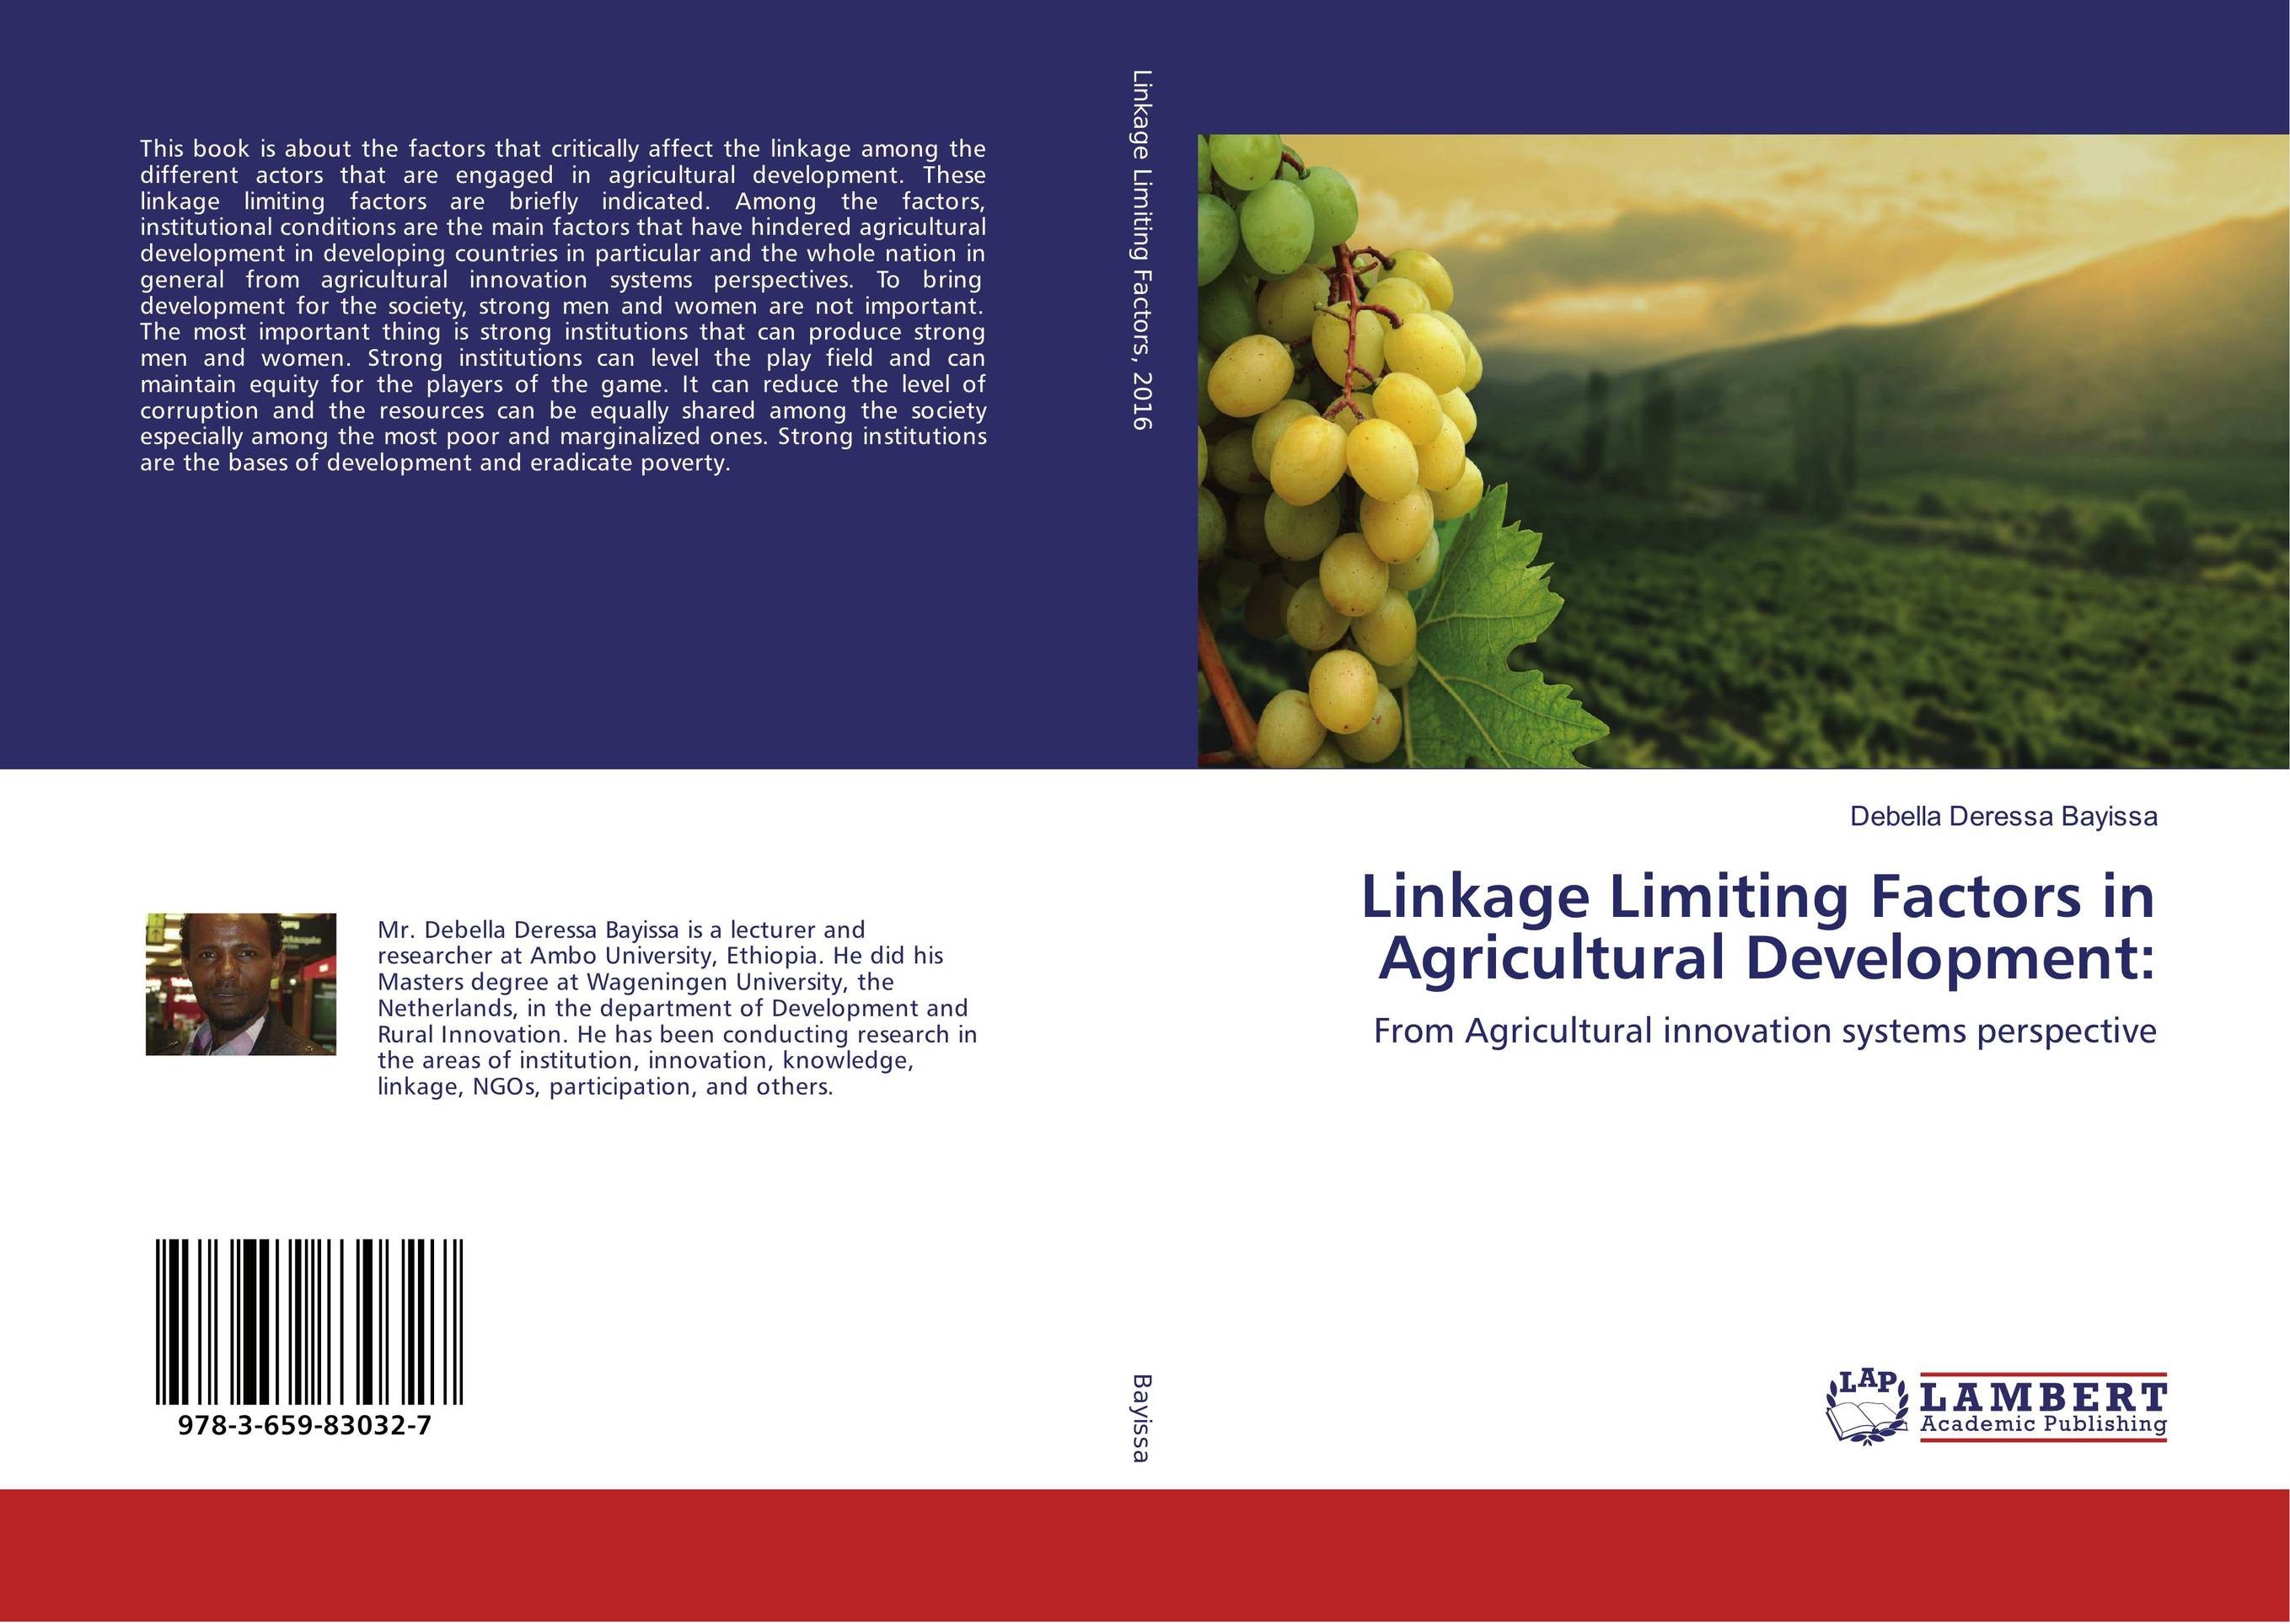 Linkage Limiting Factors in Agricultural Development: